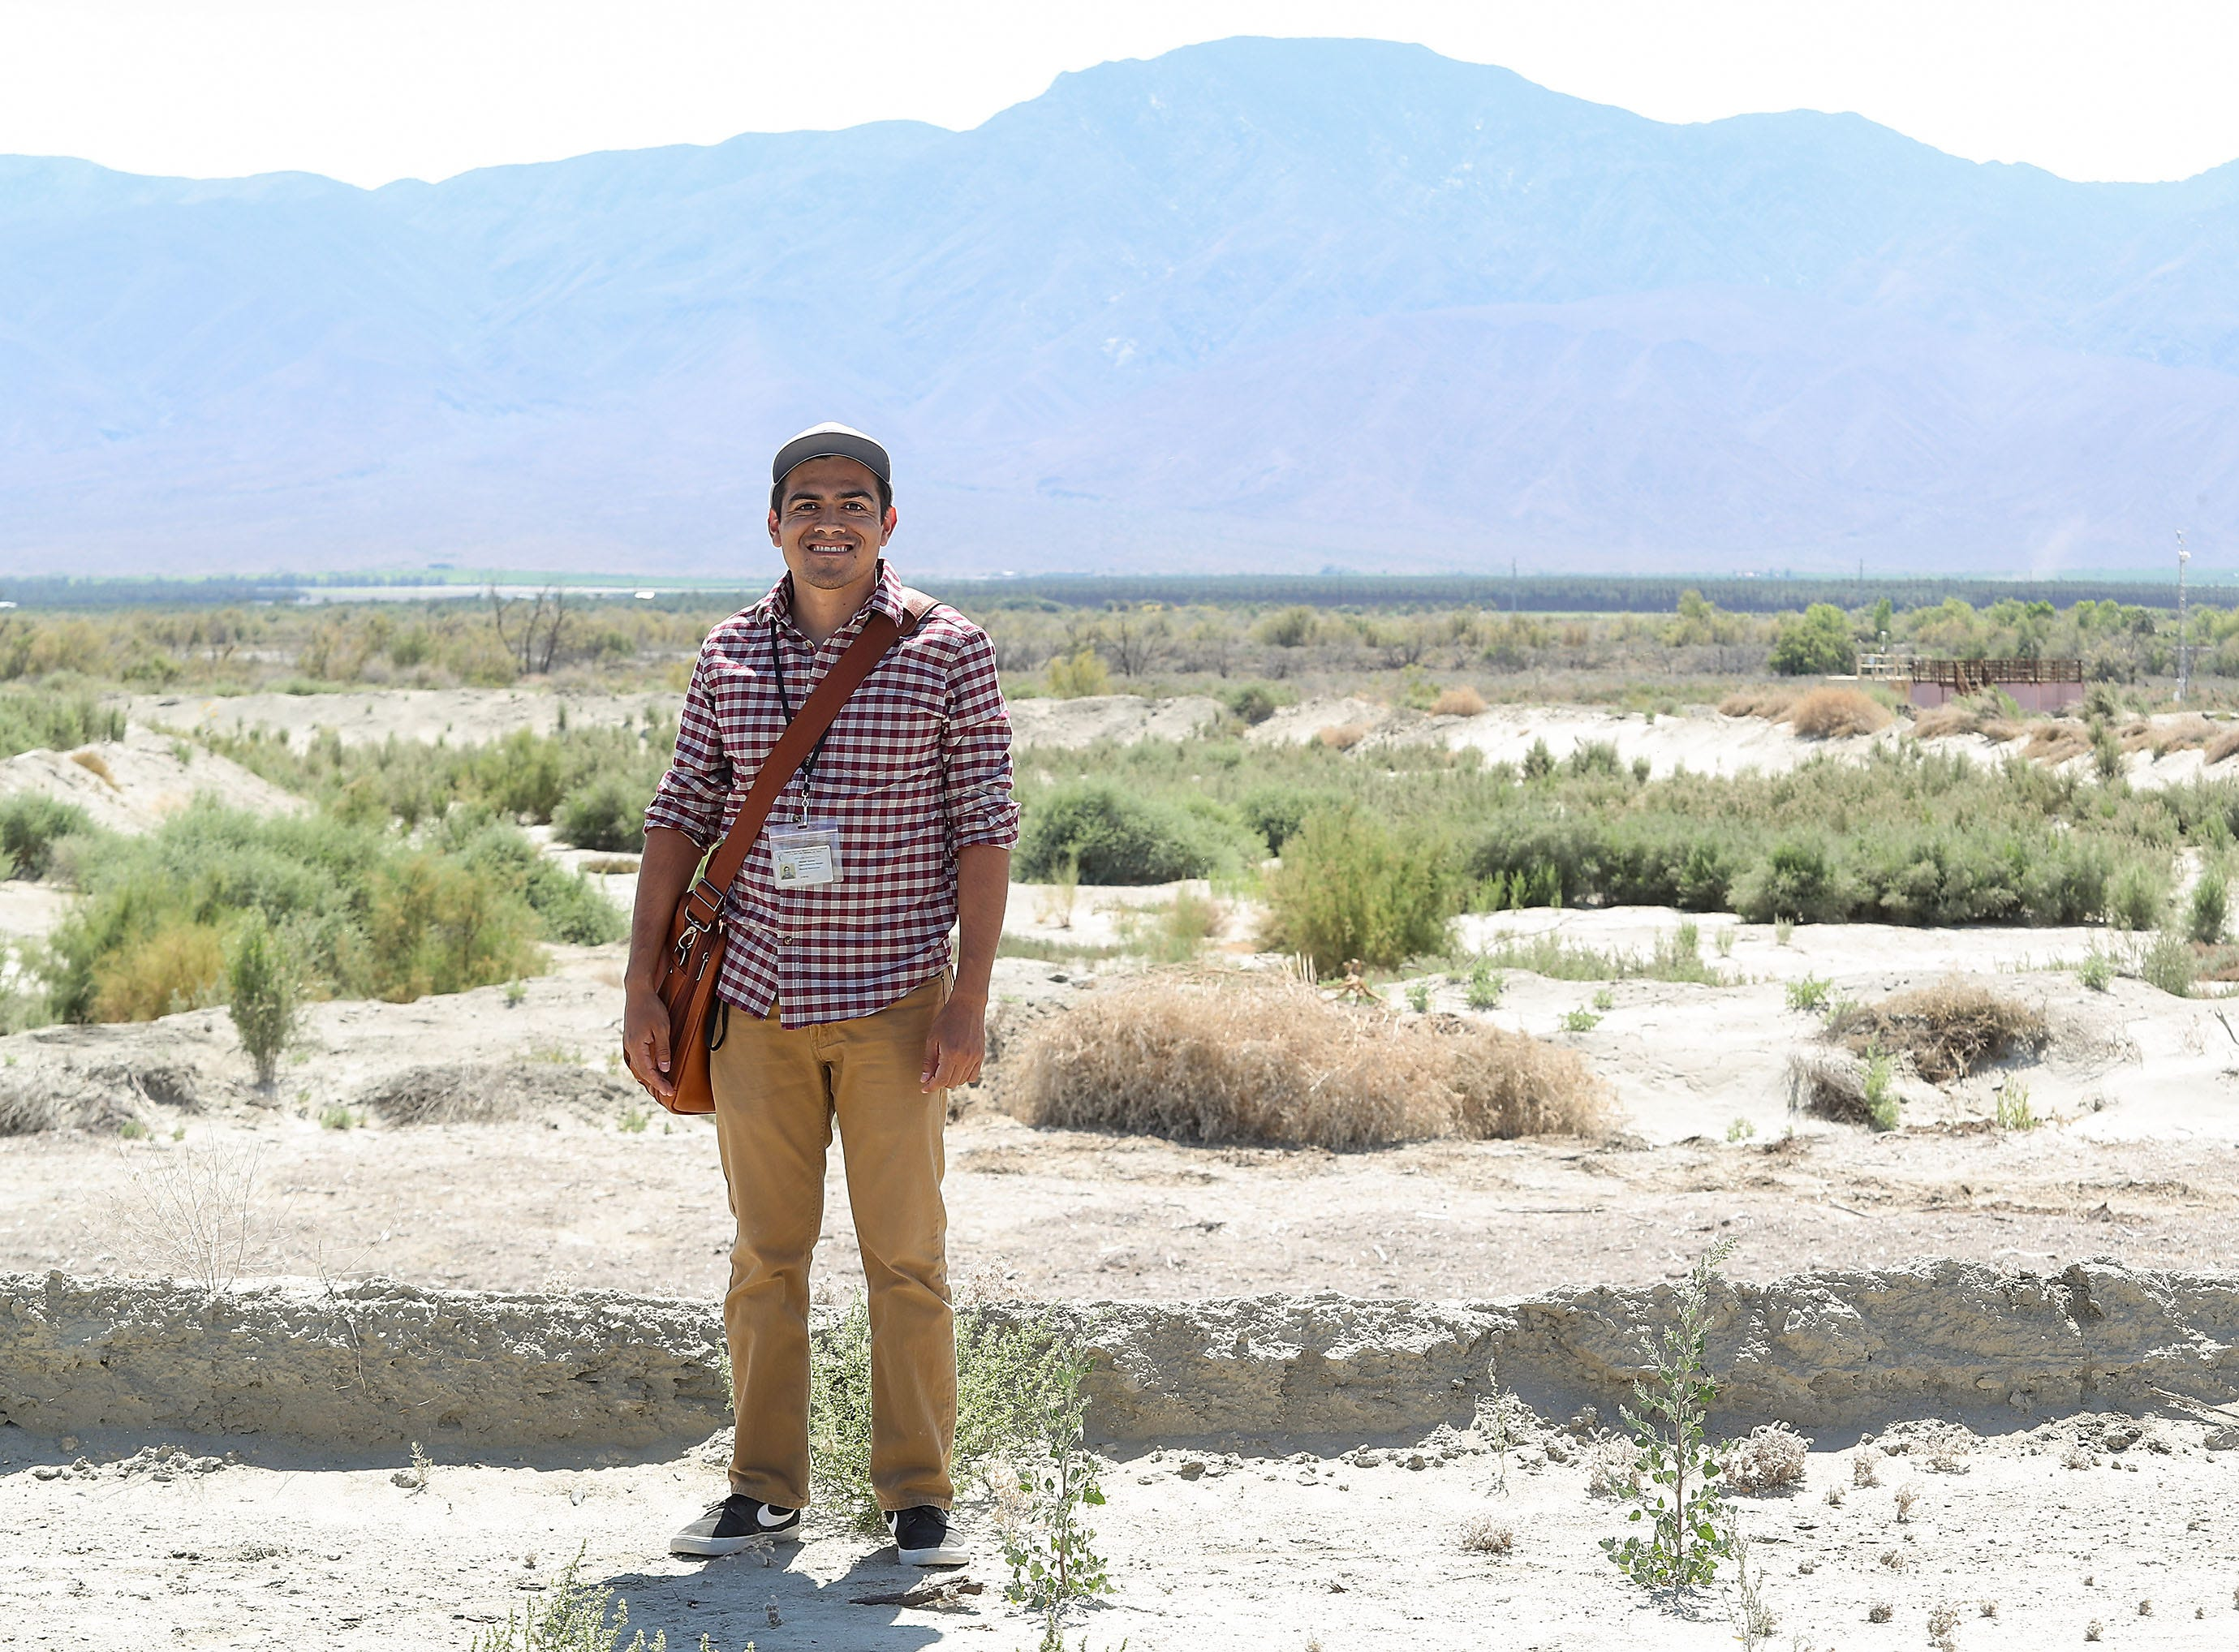 Tony Quiroz is the Natural Resources Manager for the Torres-Martinez Wetlands at the Salton Sea, April 30, 2019.